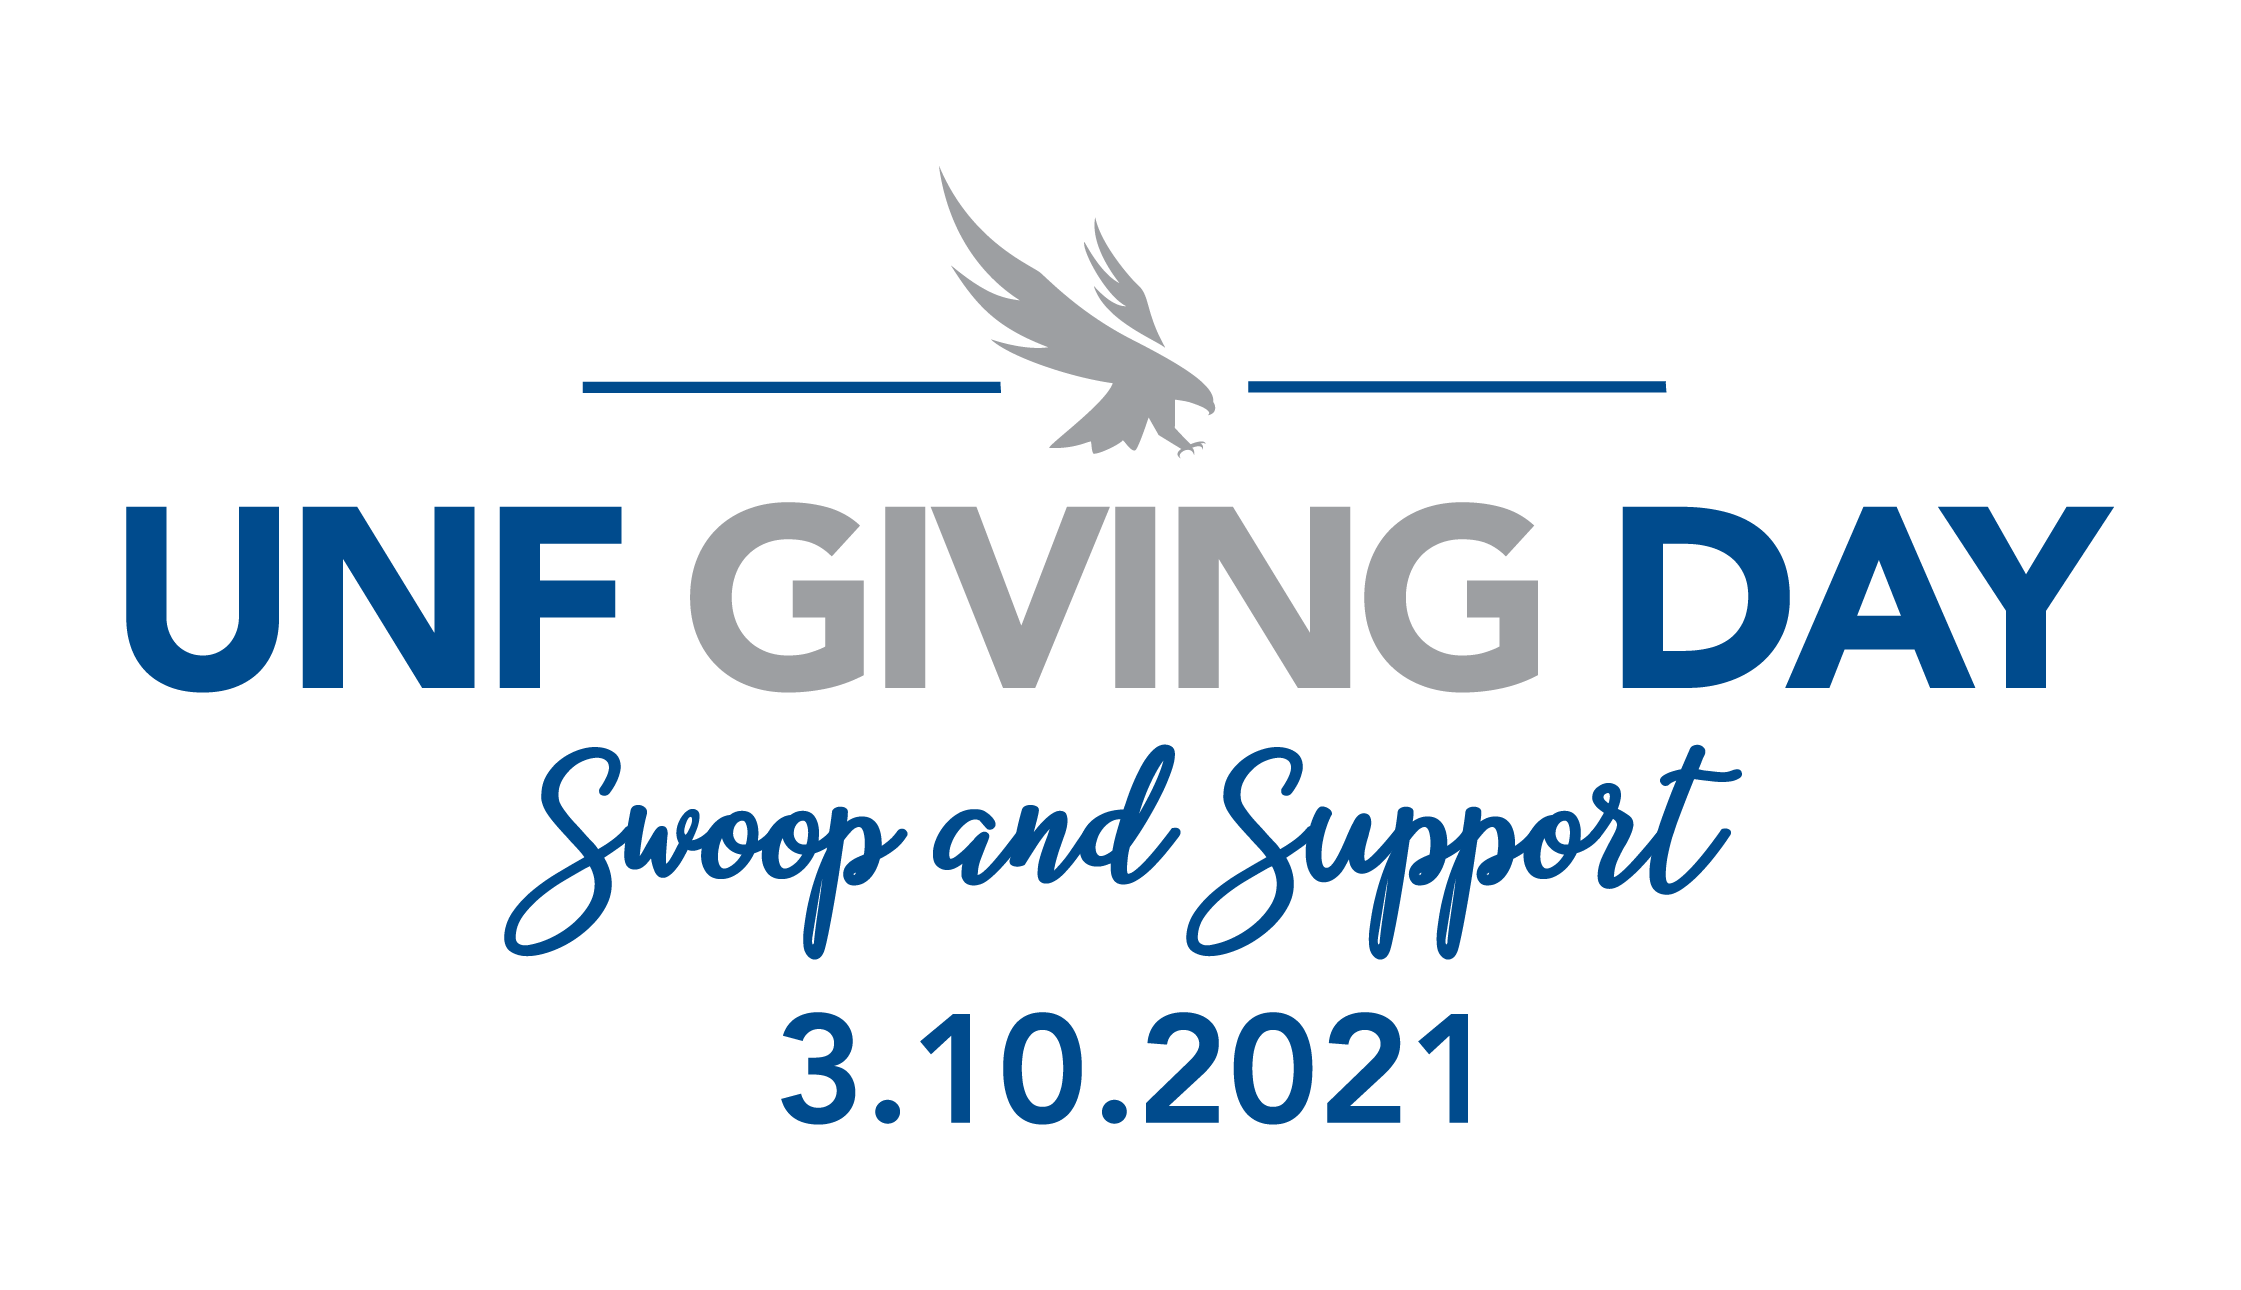 UNF Giving Day Swoop and Support March 10th 2021 - blue and gray text with a gray osprey